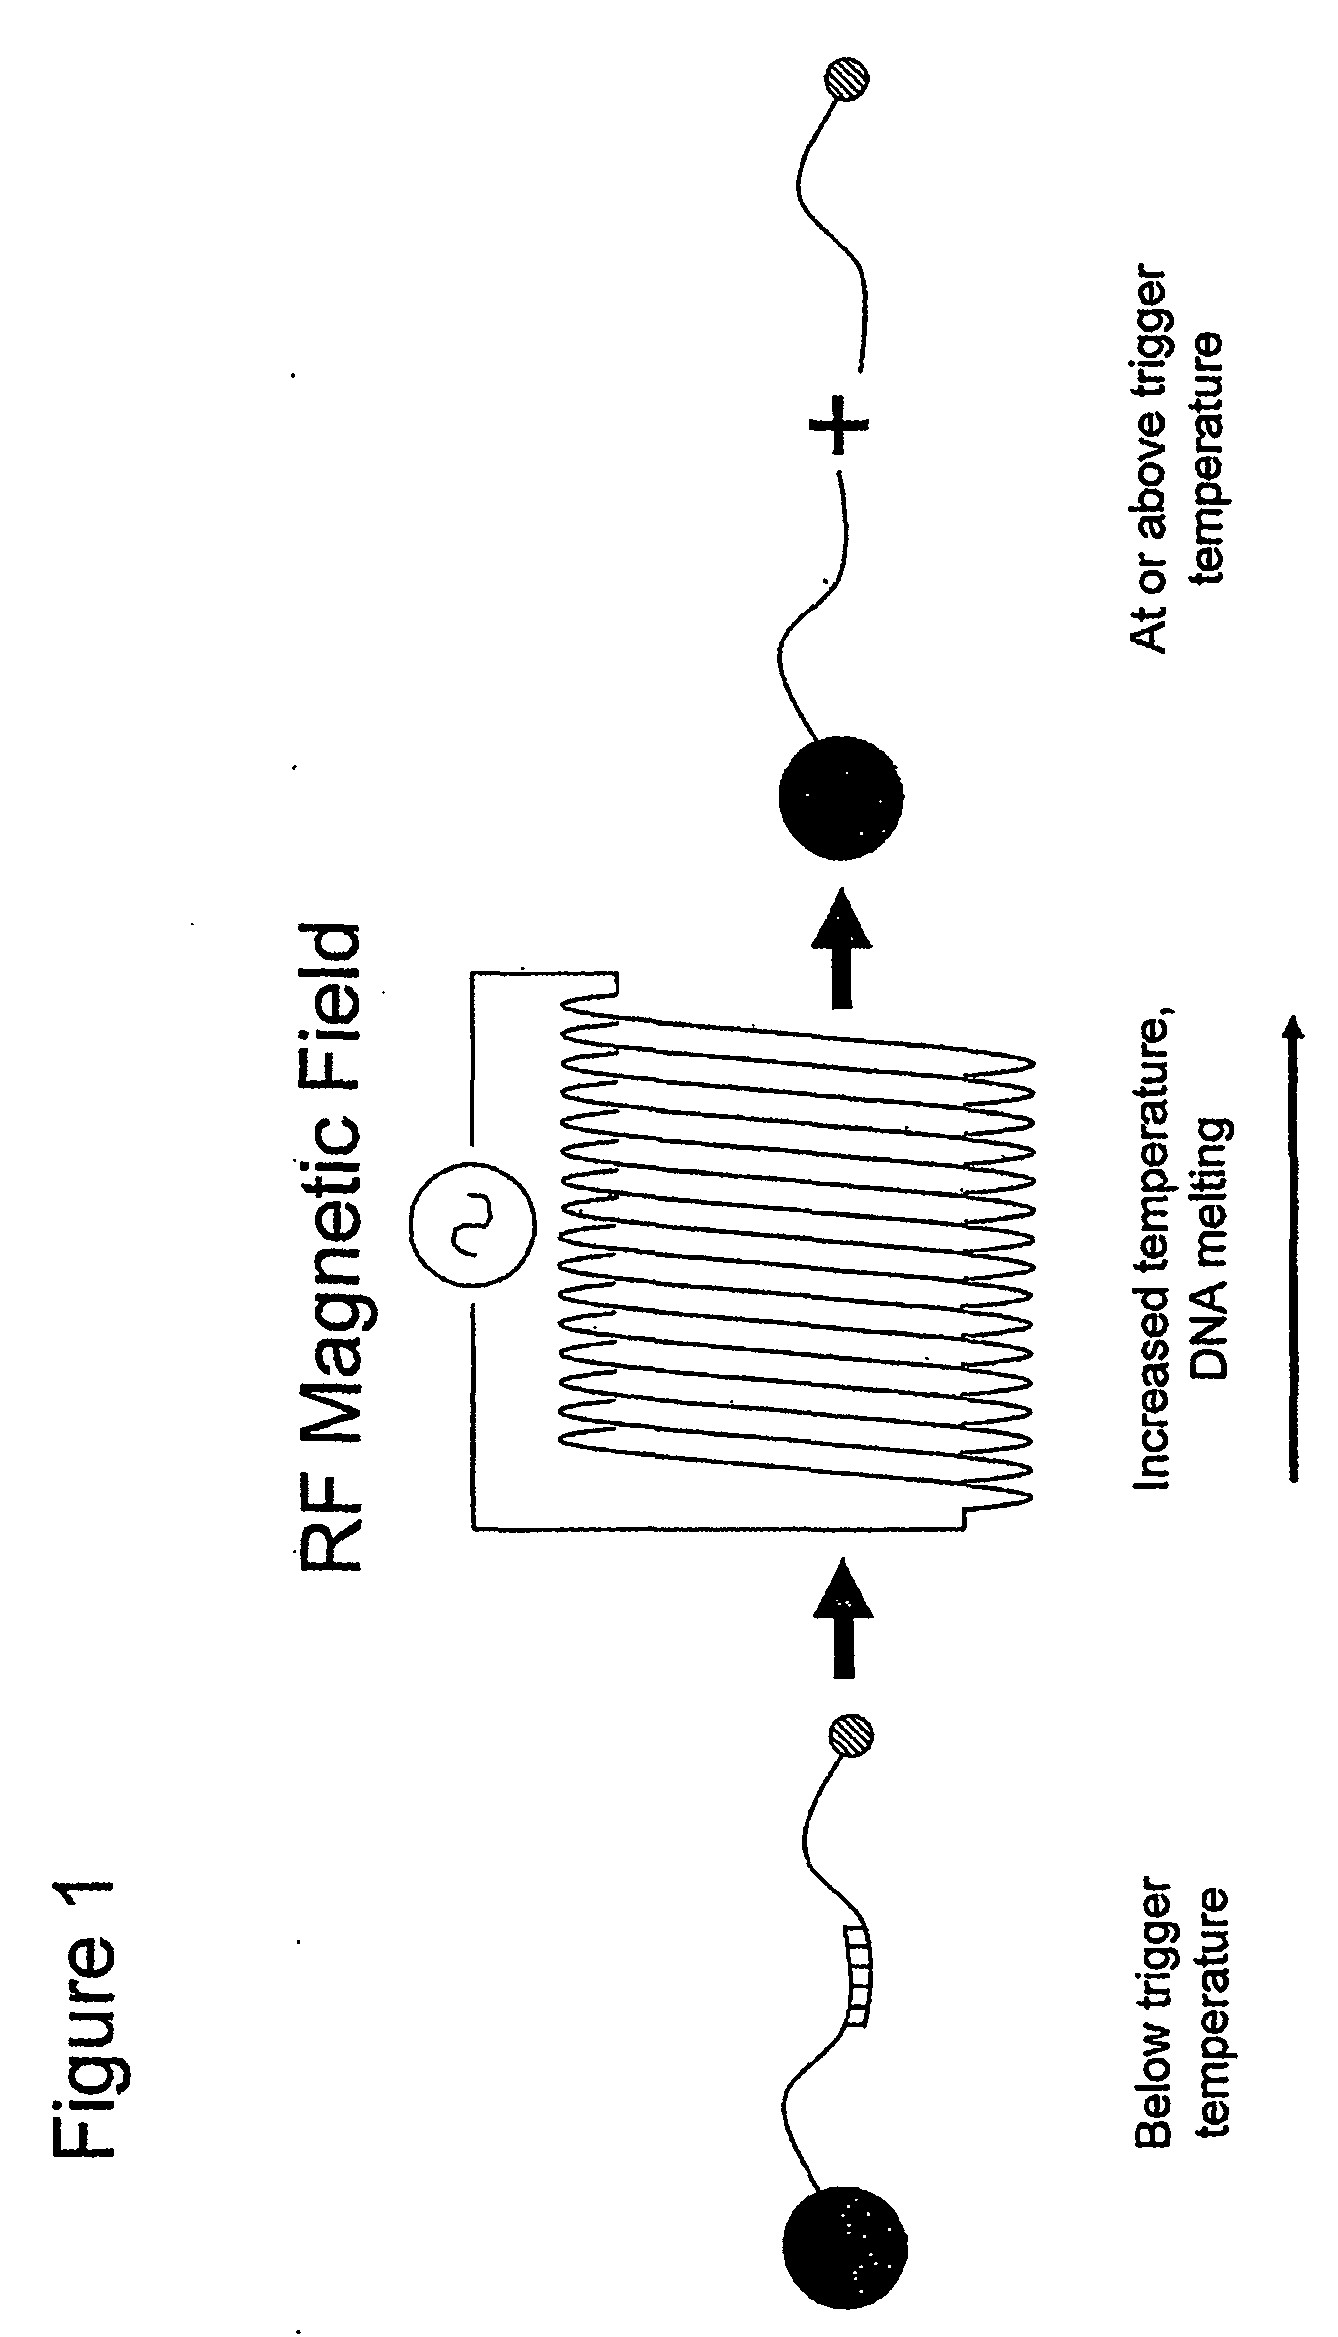 Echo Srm 225 Parts Diagram Wo A2 Delivery Of Nanoparticles and or Agents to Cells Of Echo Srm 225 Parts Diagram